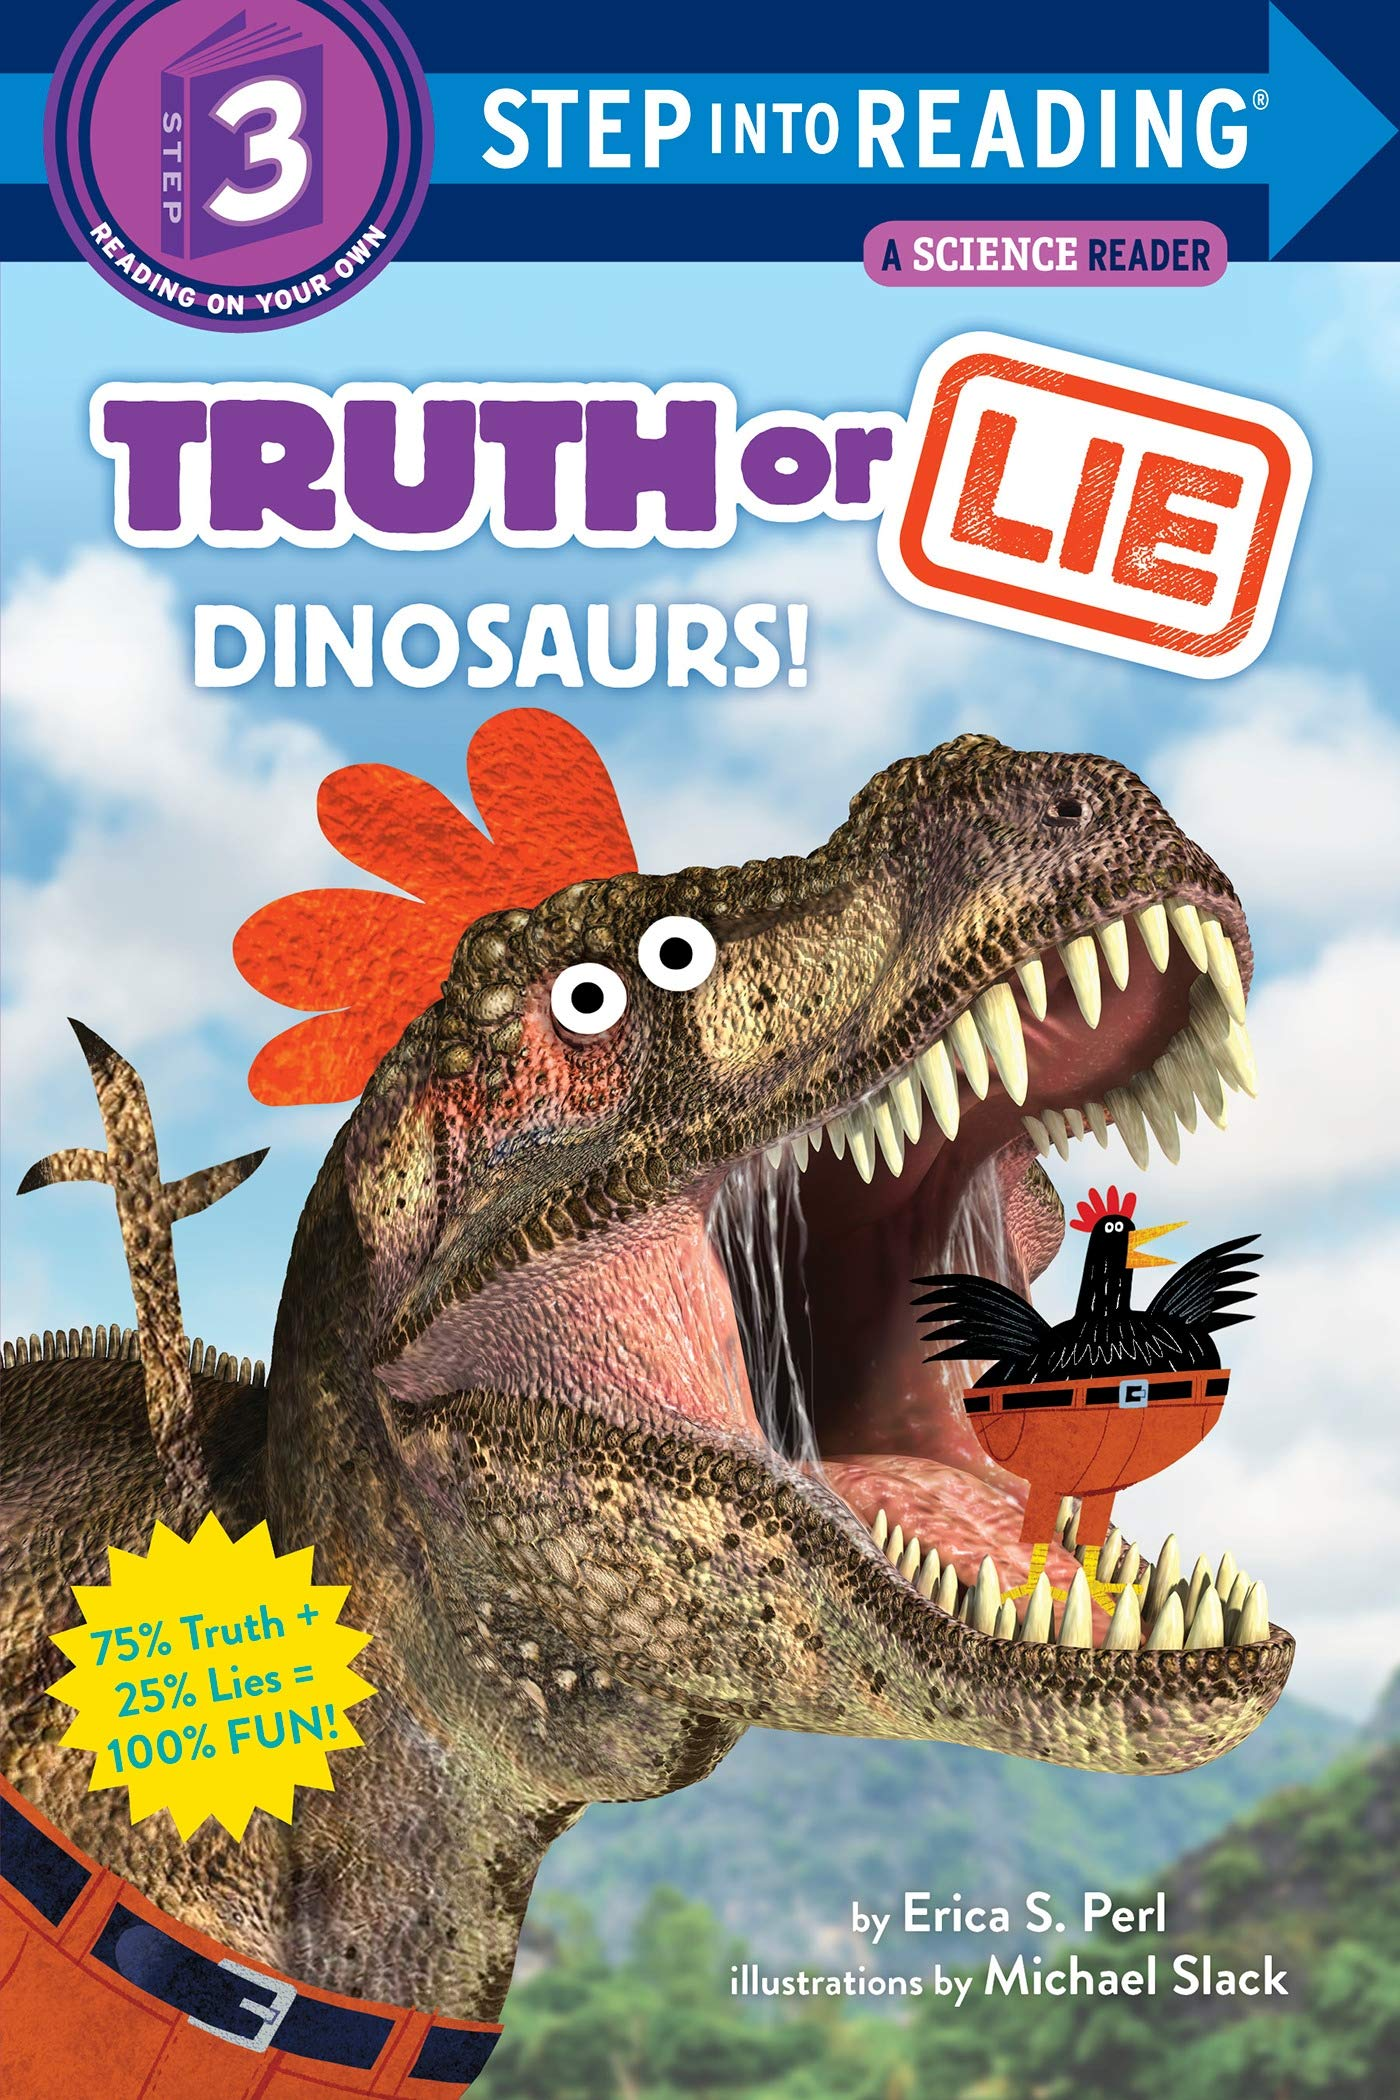 Truth or Lie: Dinosaurs! (Step into Reading): Perl, Erica S., Slack, Michael: 9780525578833: Amazon.com: Books